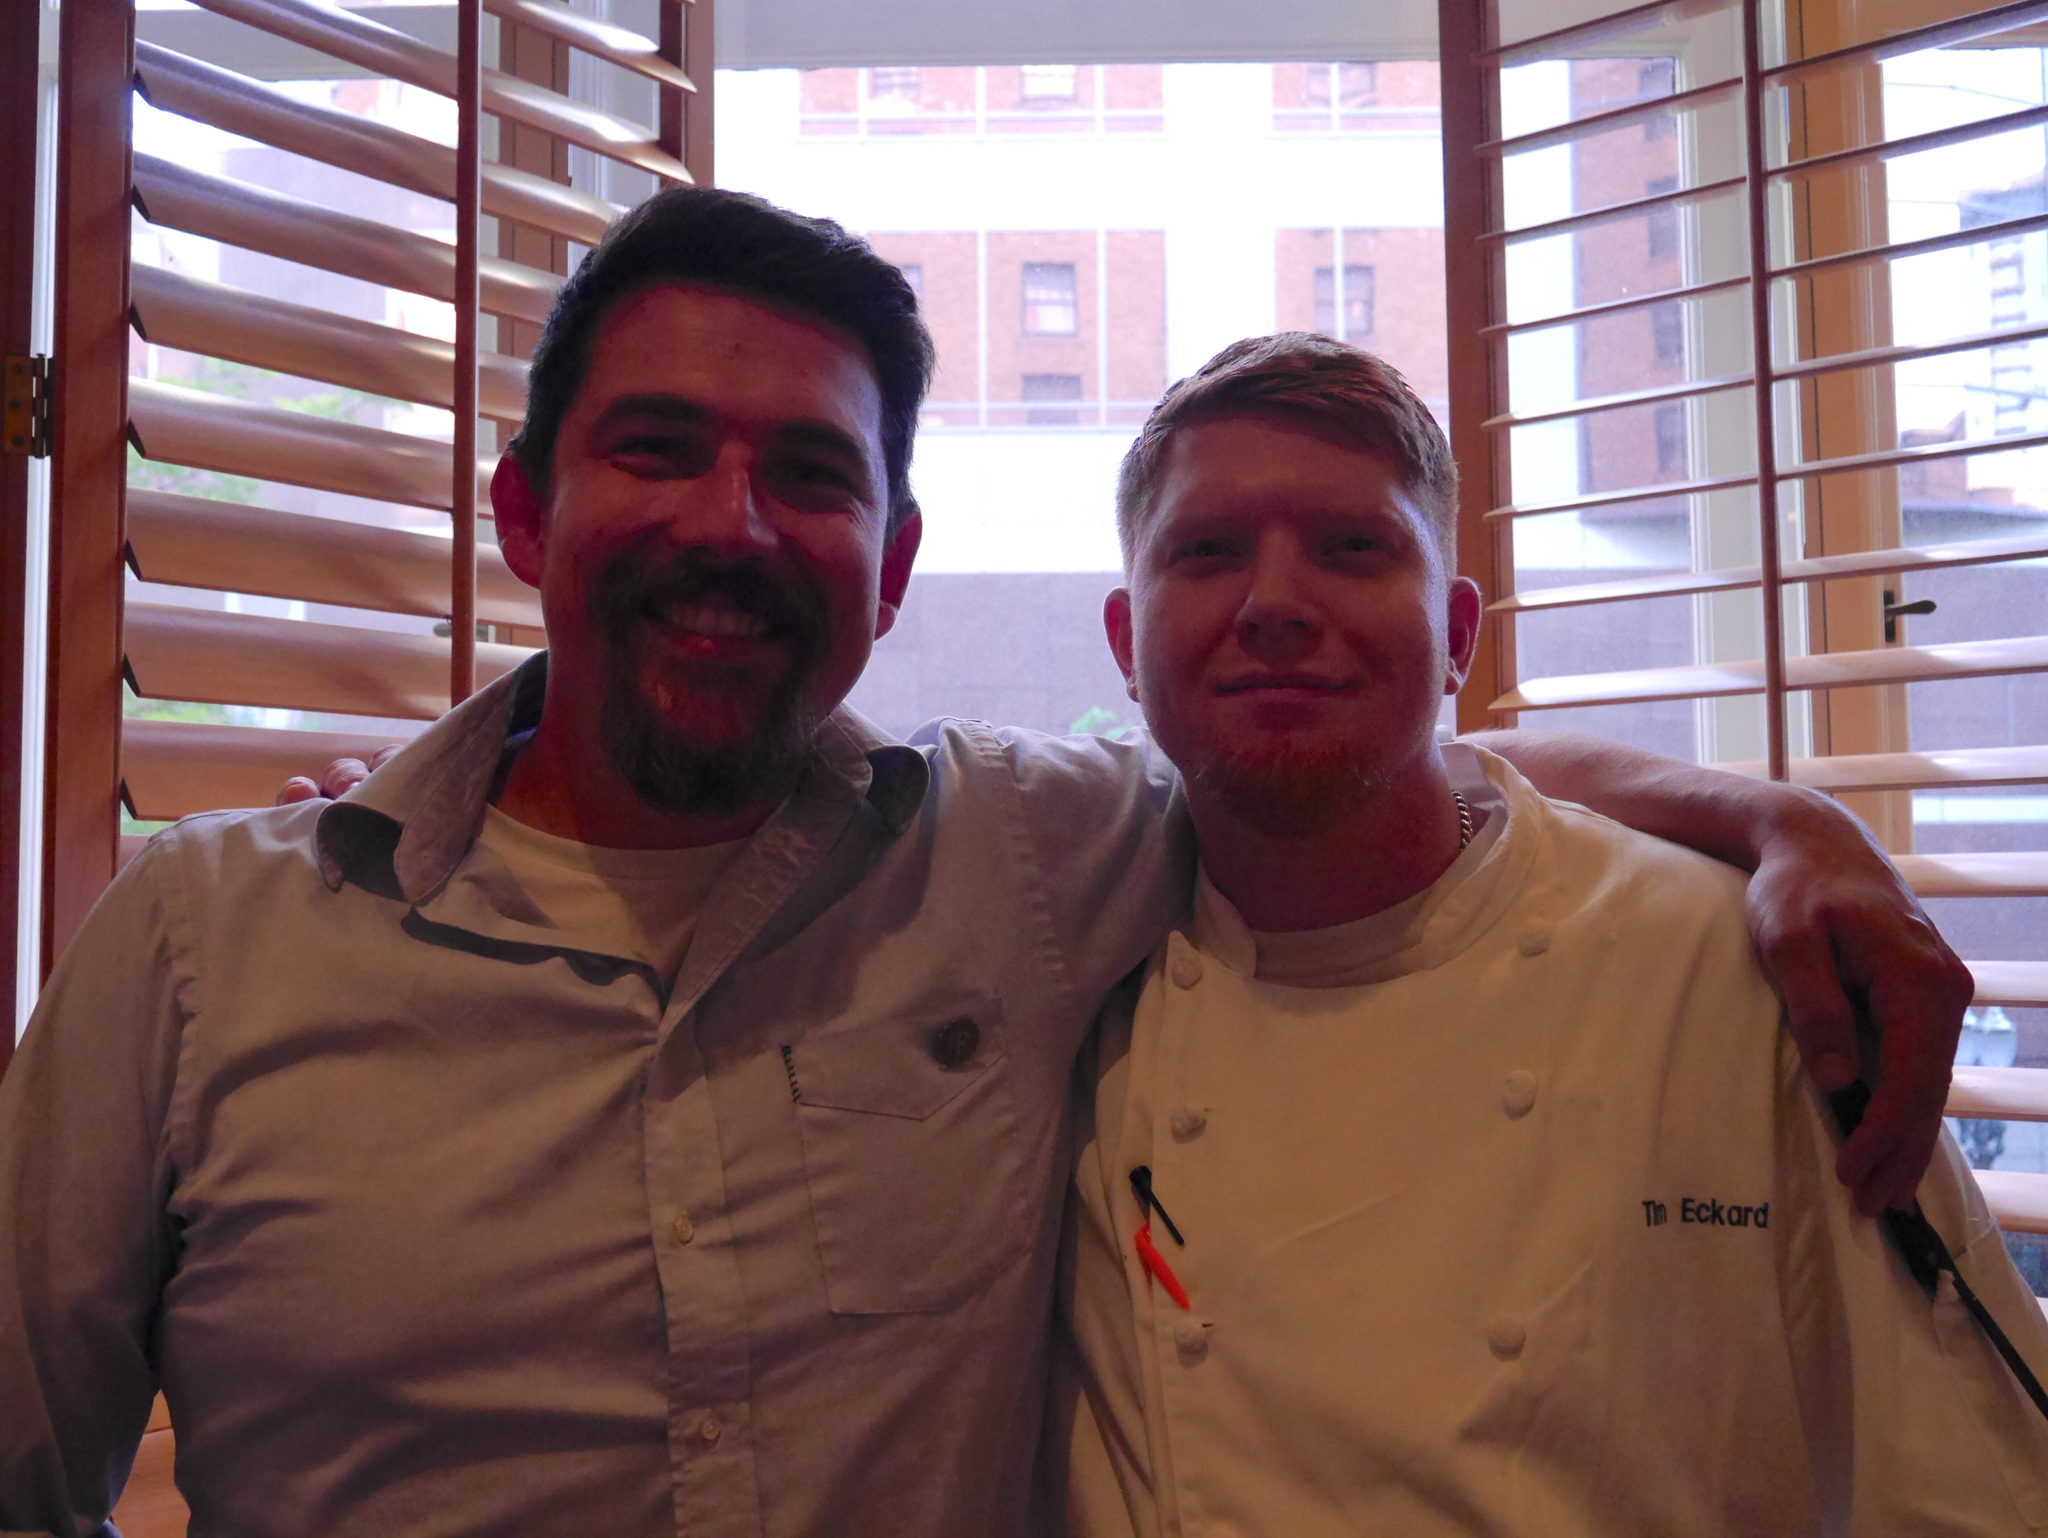 Gavin Lord from pFriem and Tim Eckard from Headwaters during the pFriem Beer Dinner at Headwaters. (photo by Cat Stelzer)